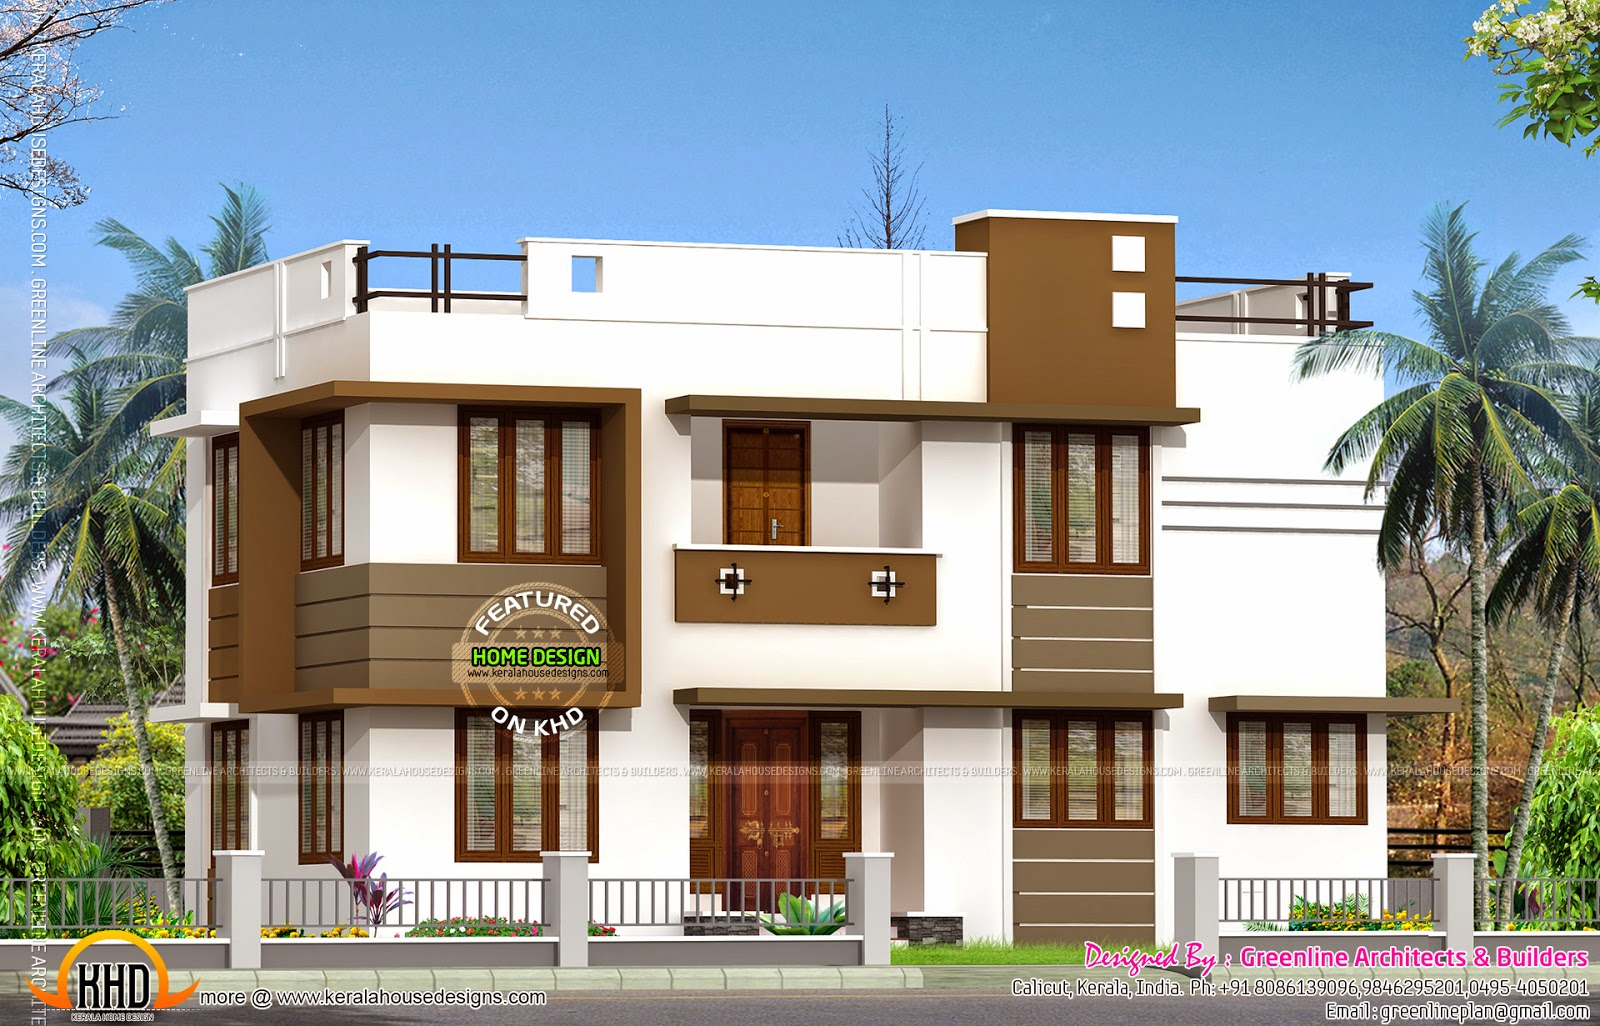 Low budget double storied house kerala home design and for Low budget home plans